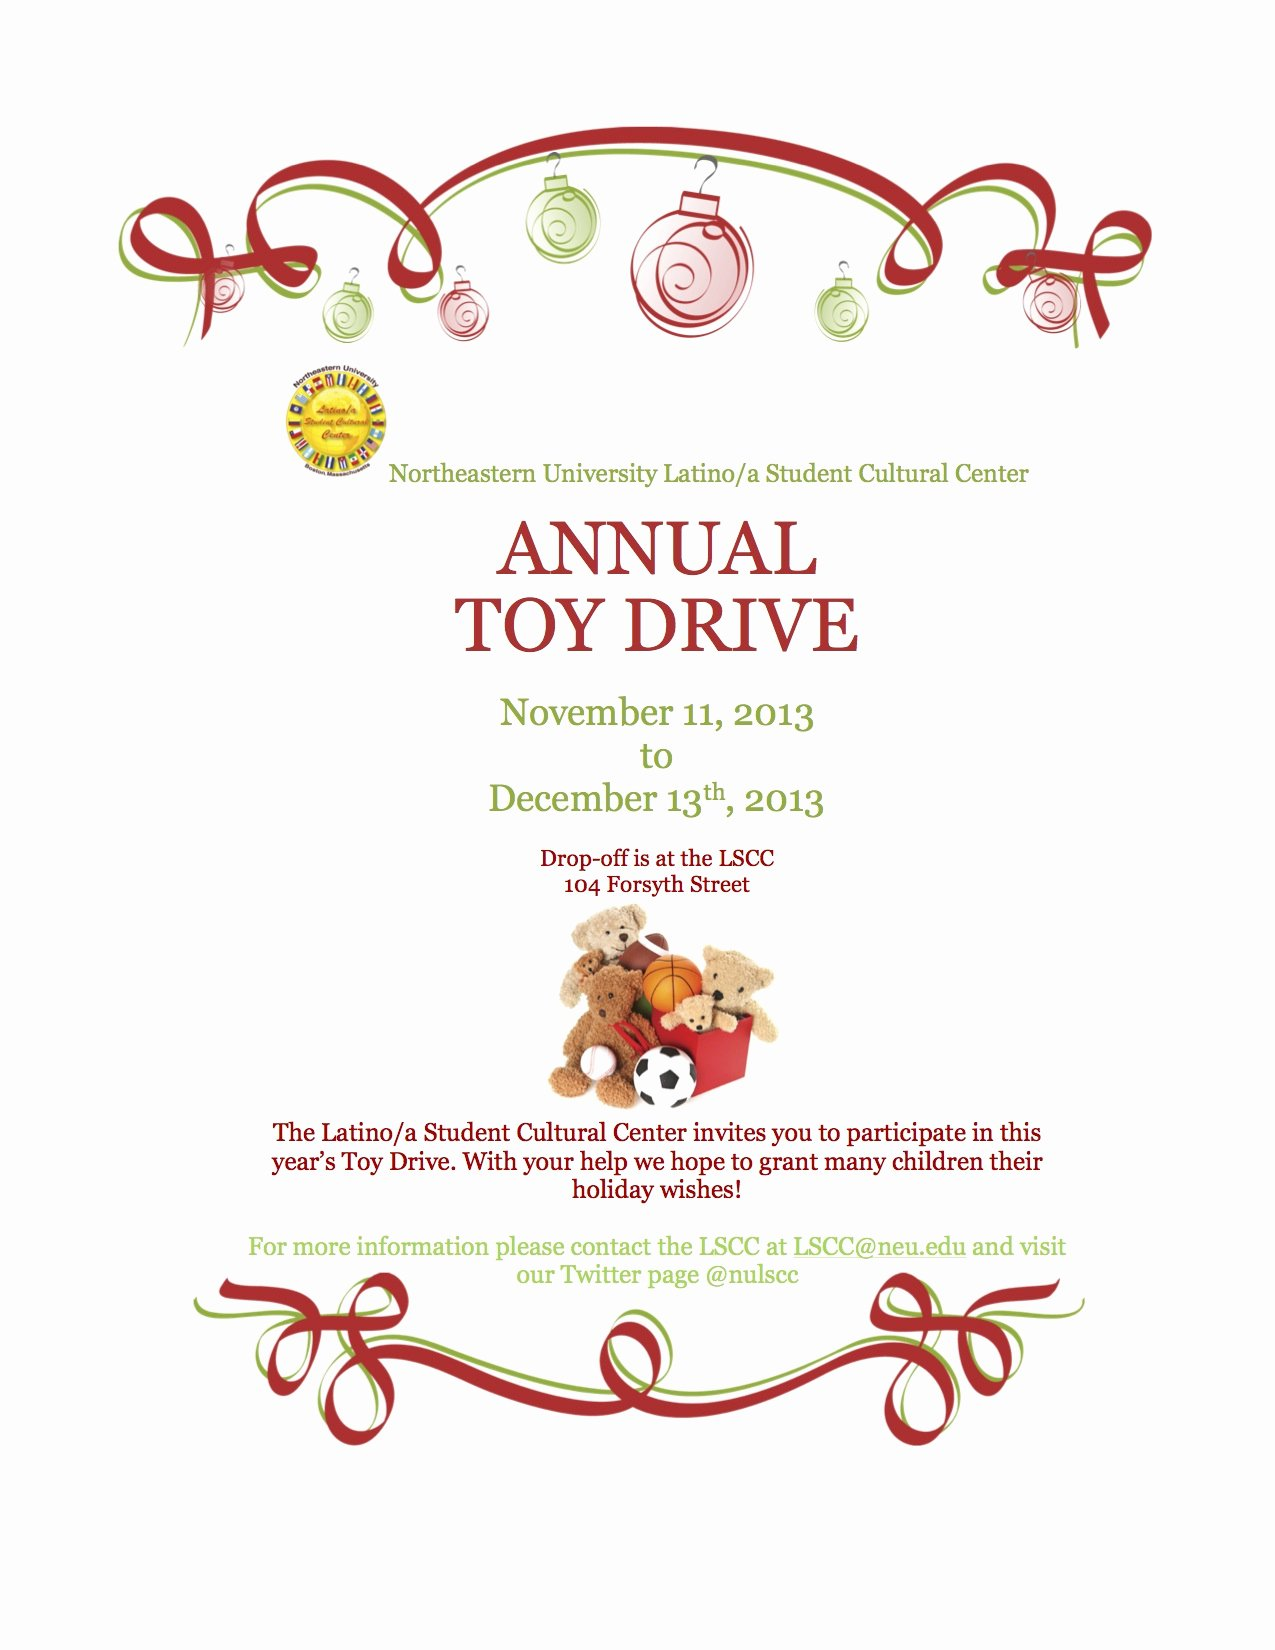 Toy Drive Flyer Template New Lscc toy Drive